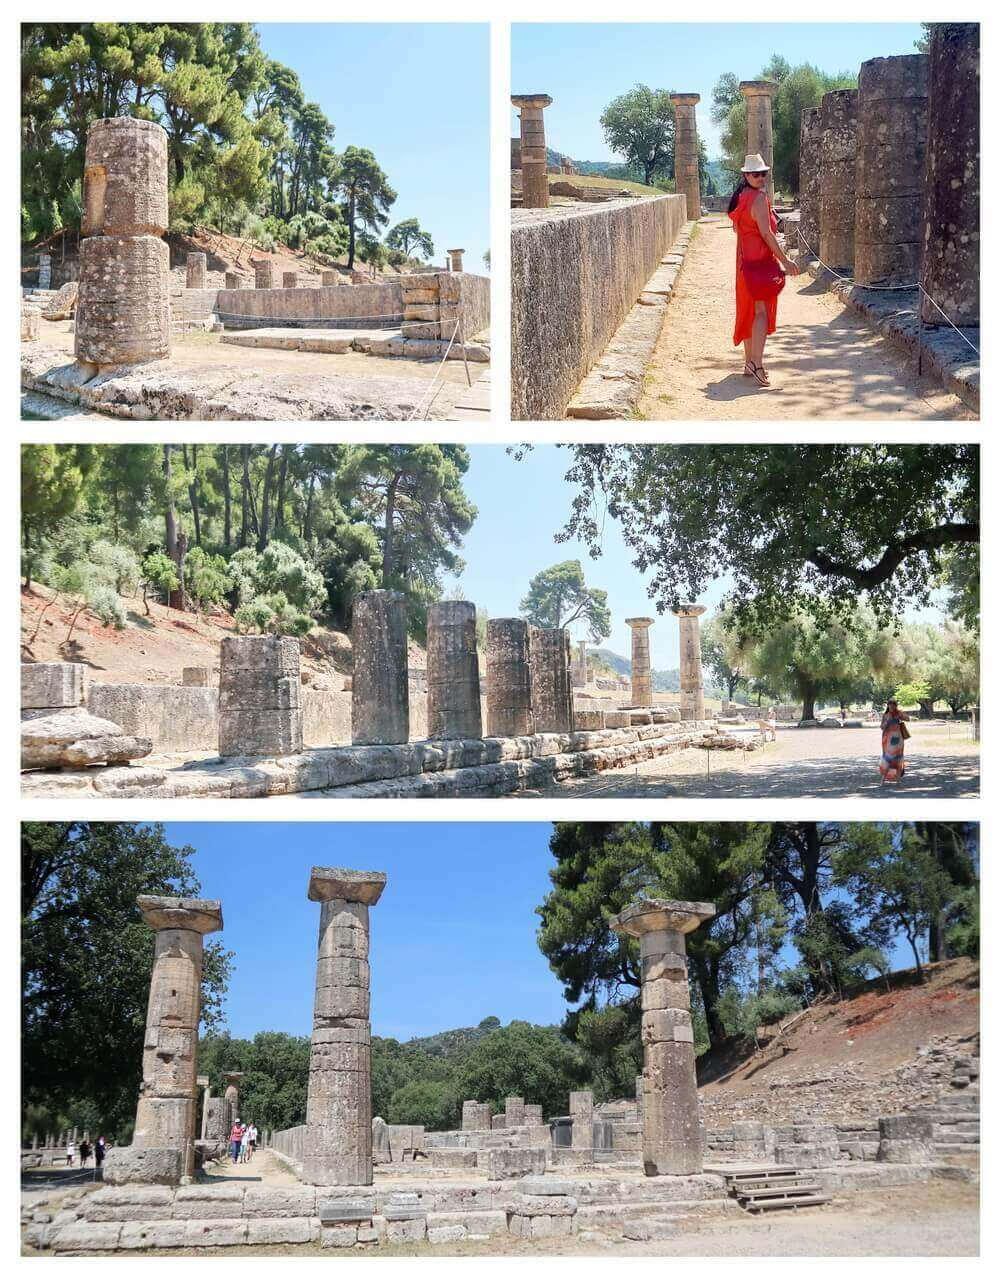 The Temple of Hera, ancient Olympia